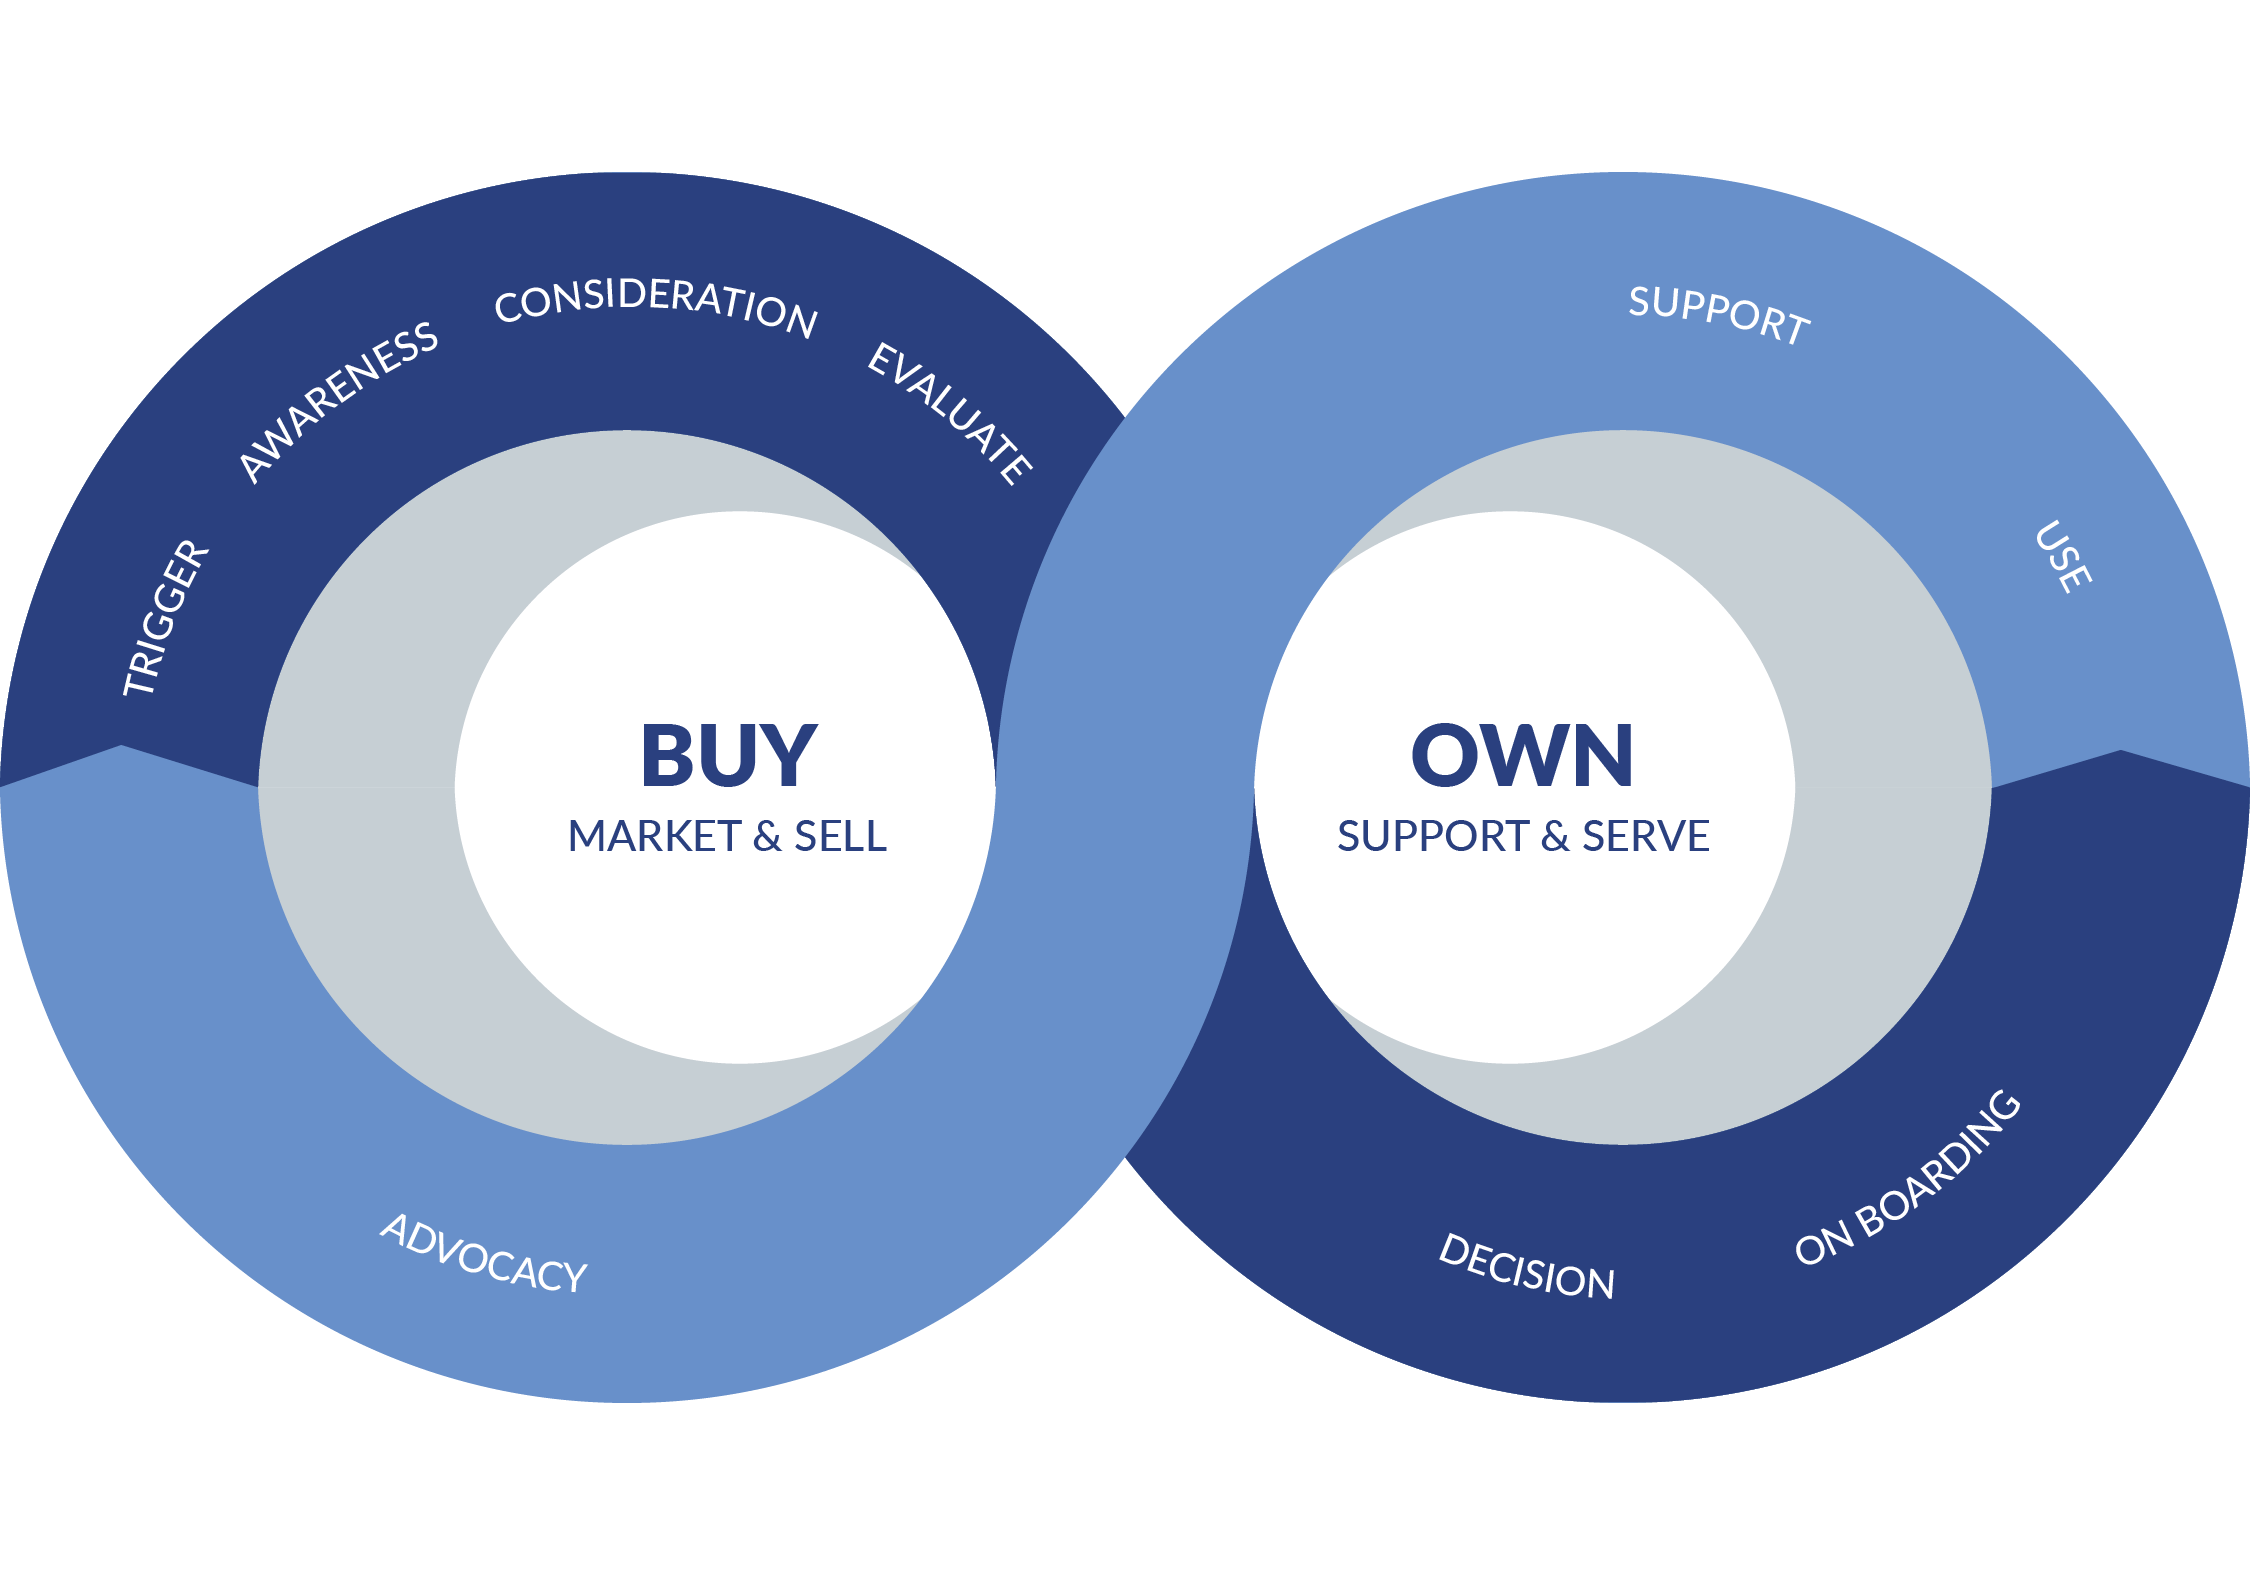 Purchase Journey – CX